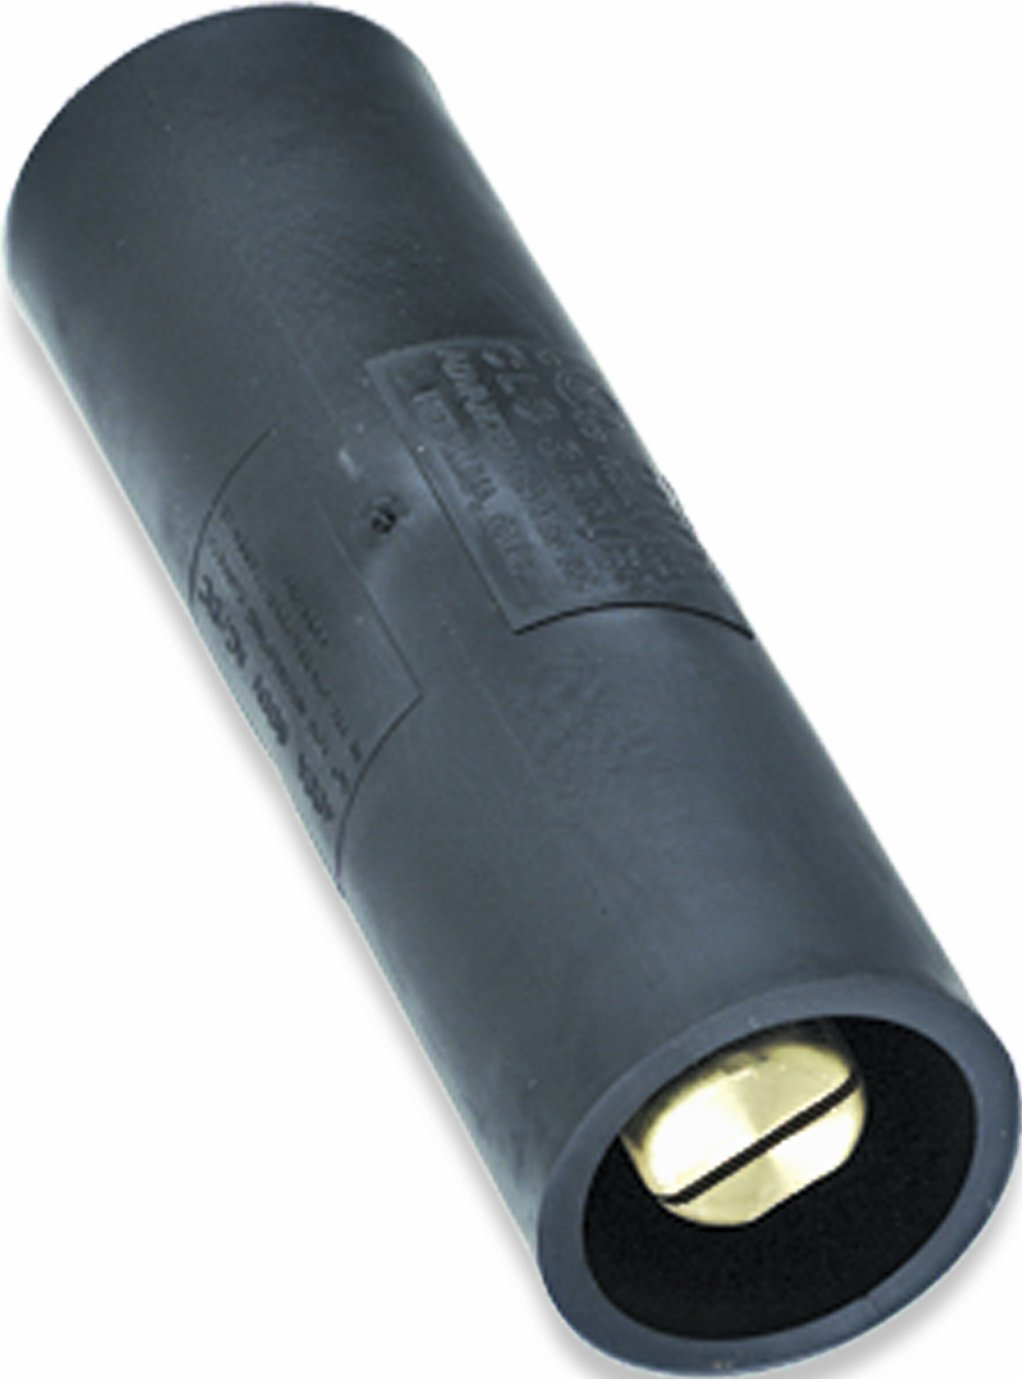 Marinco CDMM-A CLS Cam Type, Series 16, 400 Amp Male to Male Coupler (M-M) - Black (A) by Marinco Power Products